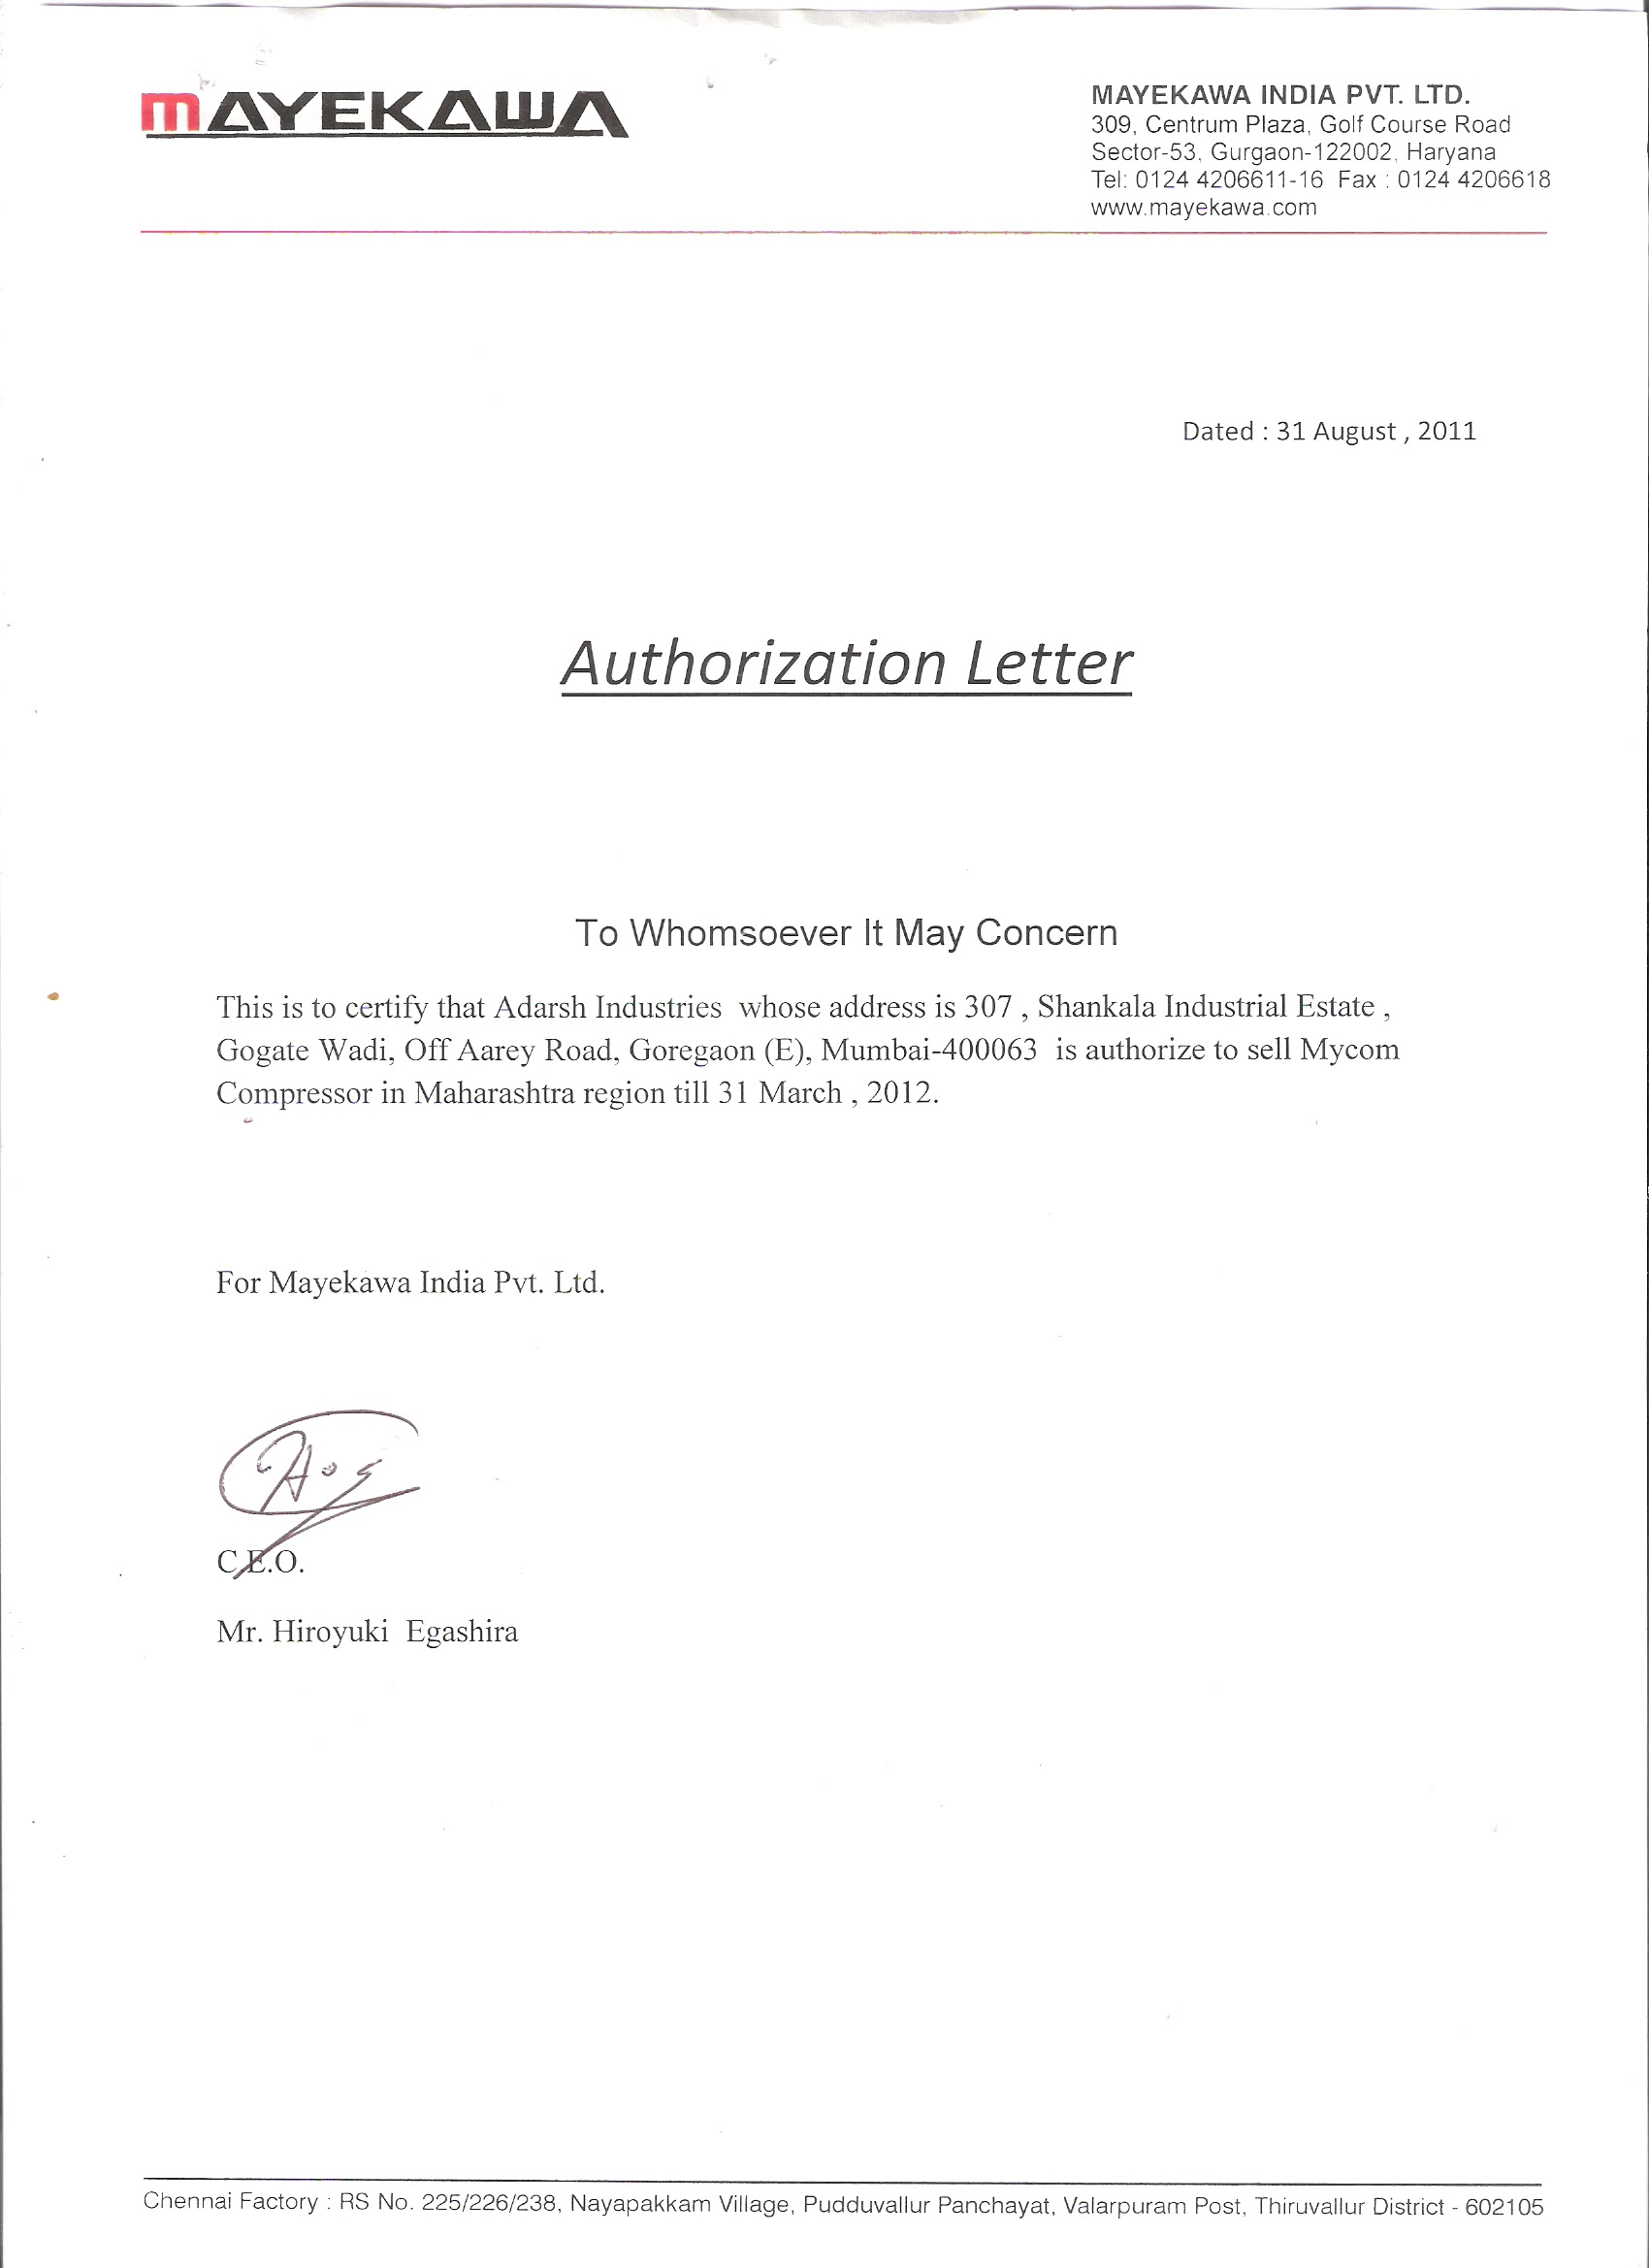 Authorization Letter Format For Company Representative. authorization letter  Endo re enhance dental co